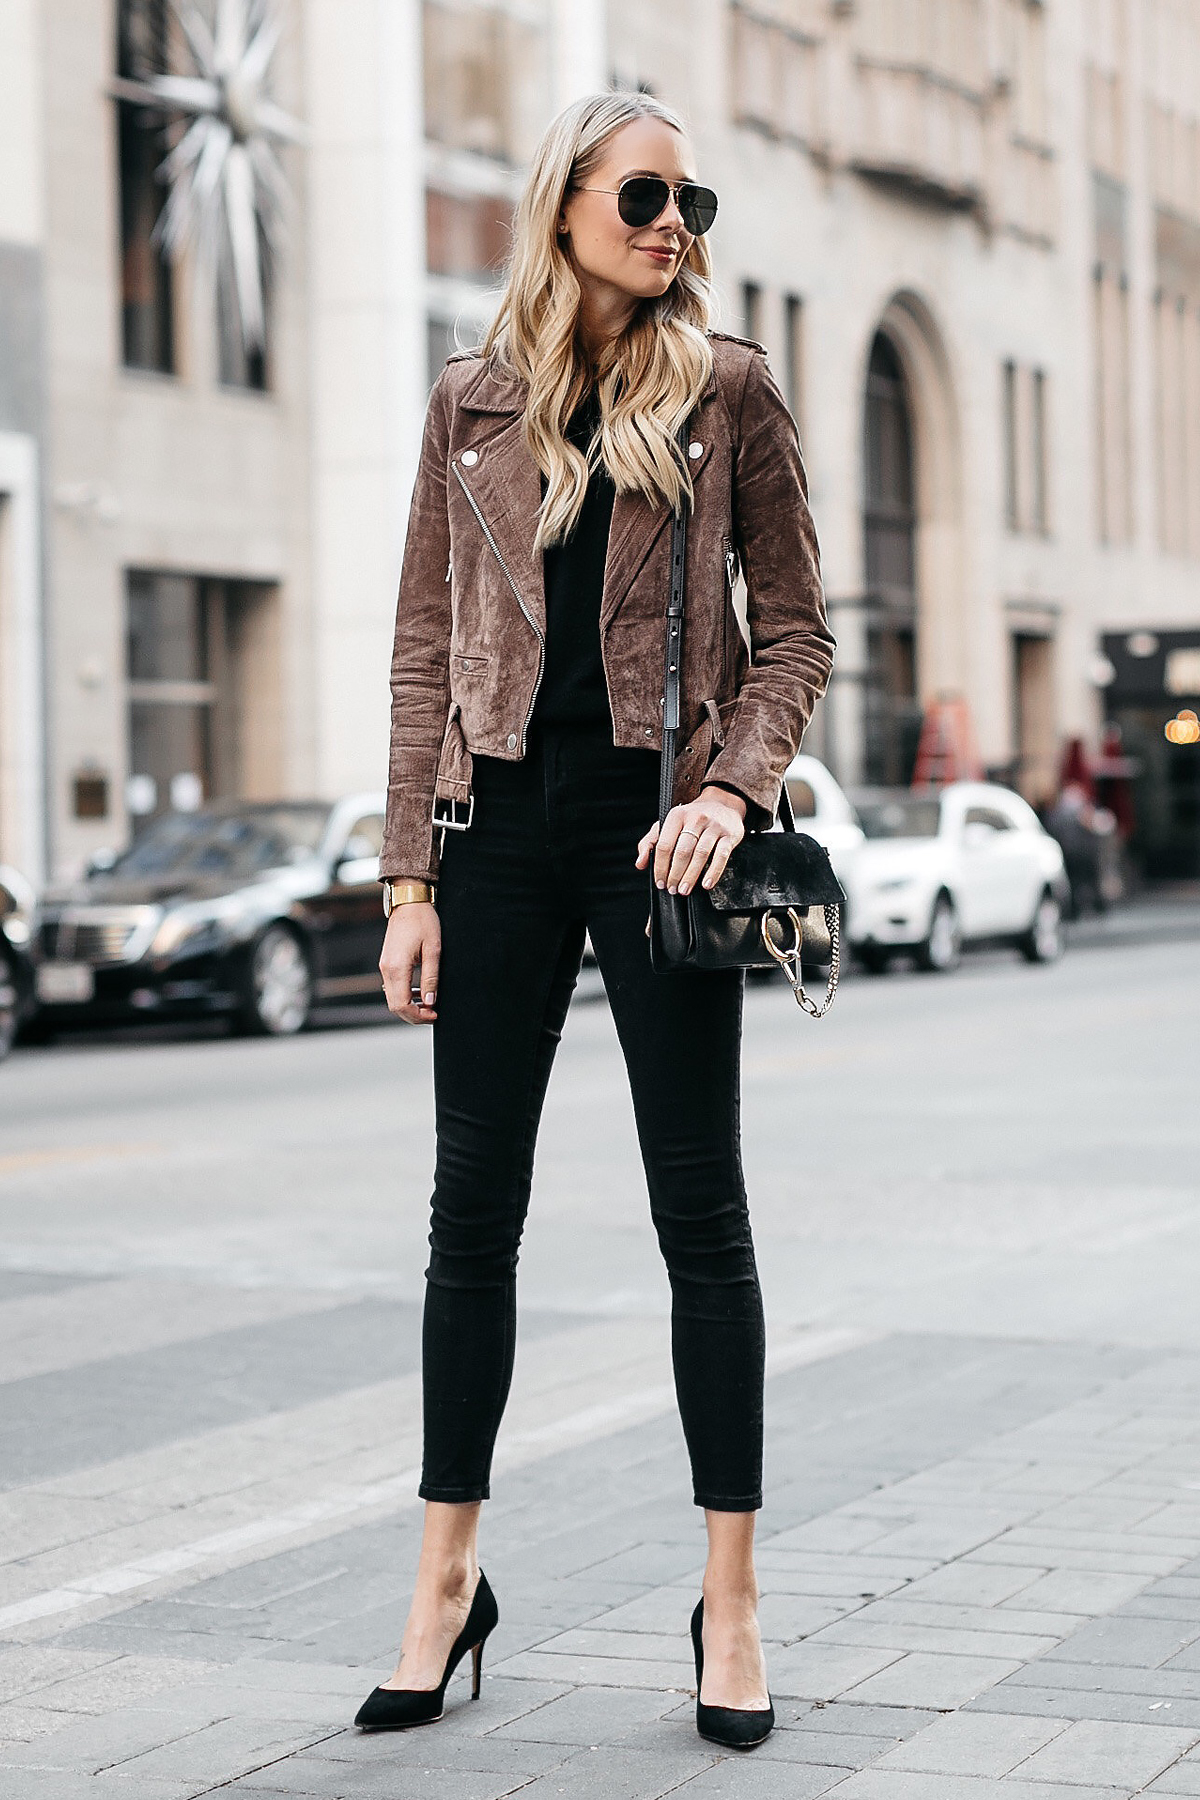 Blonde Woman Wearing Blanknyc Suede Moto Jacket Black Skinny Jeans Black Pumps Chloe Faye Handbag Fashion Jackson Dallas Blogger Fashion Blogger Street Style